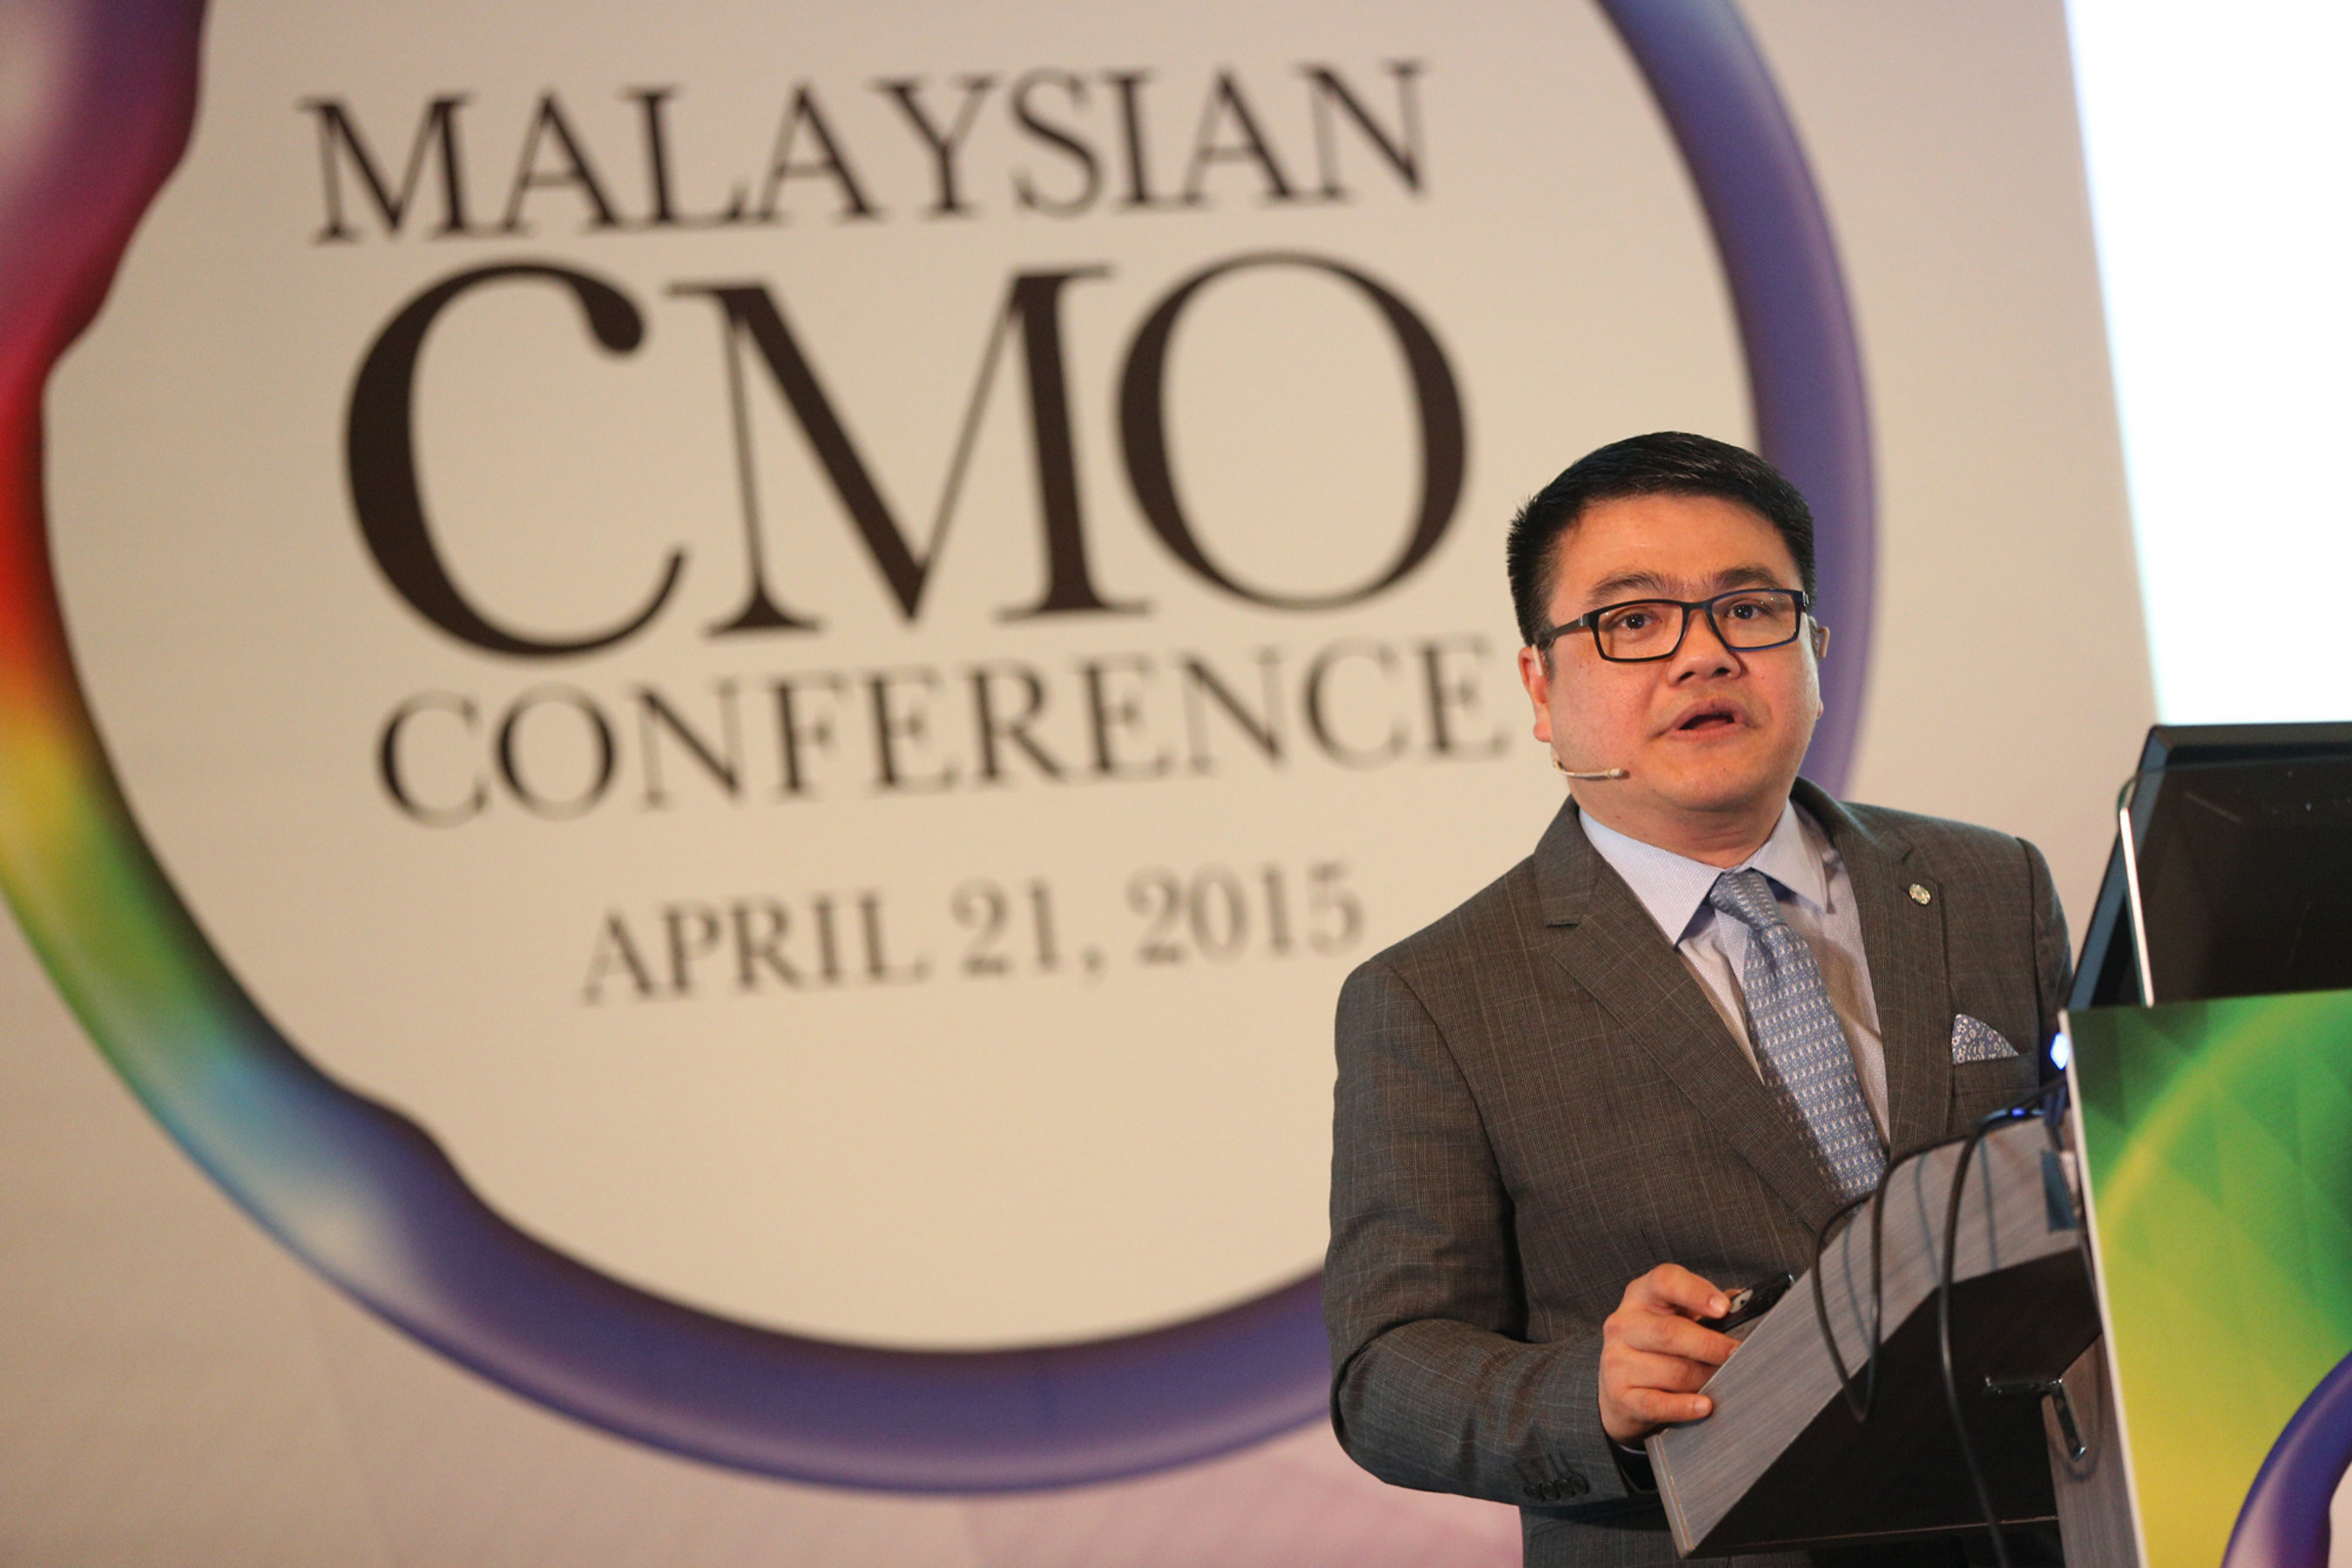 Tencent's SY Lau Tells Malaysian CMO Conference that China has now entered the era of Digitalization 3.0